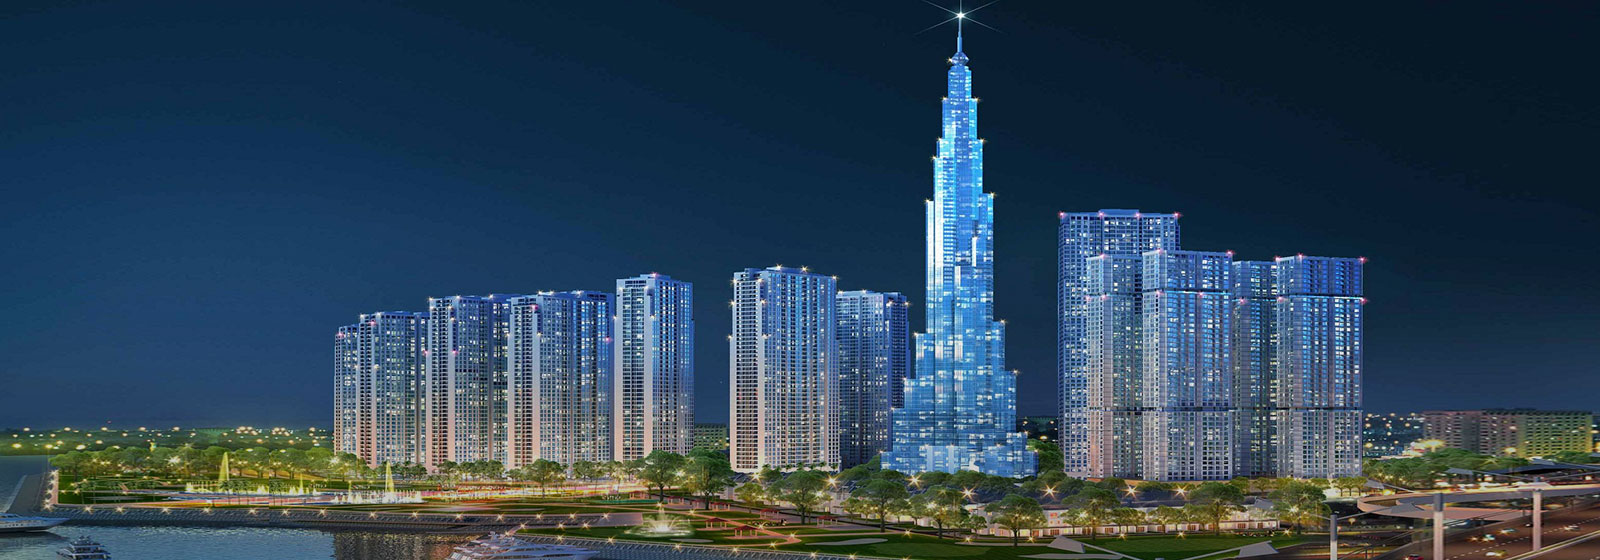 Vinhomes Central Park Tan Cang